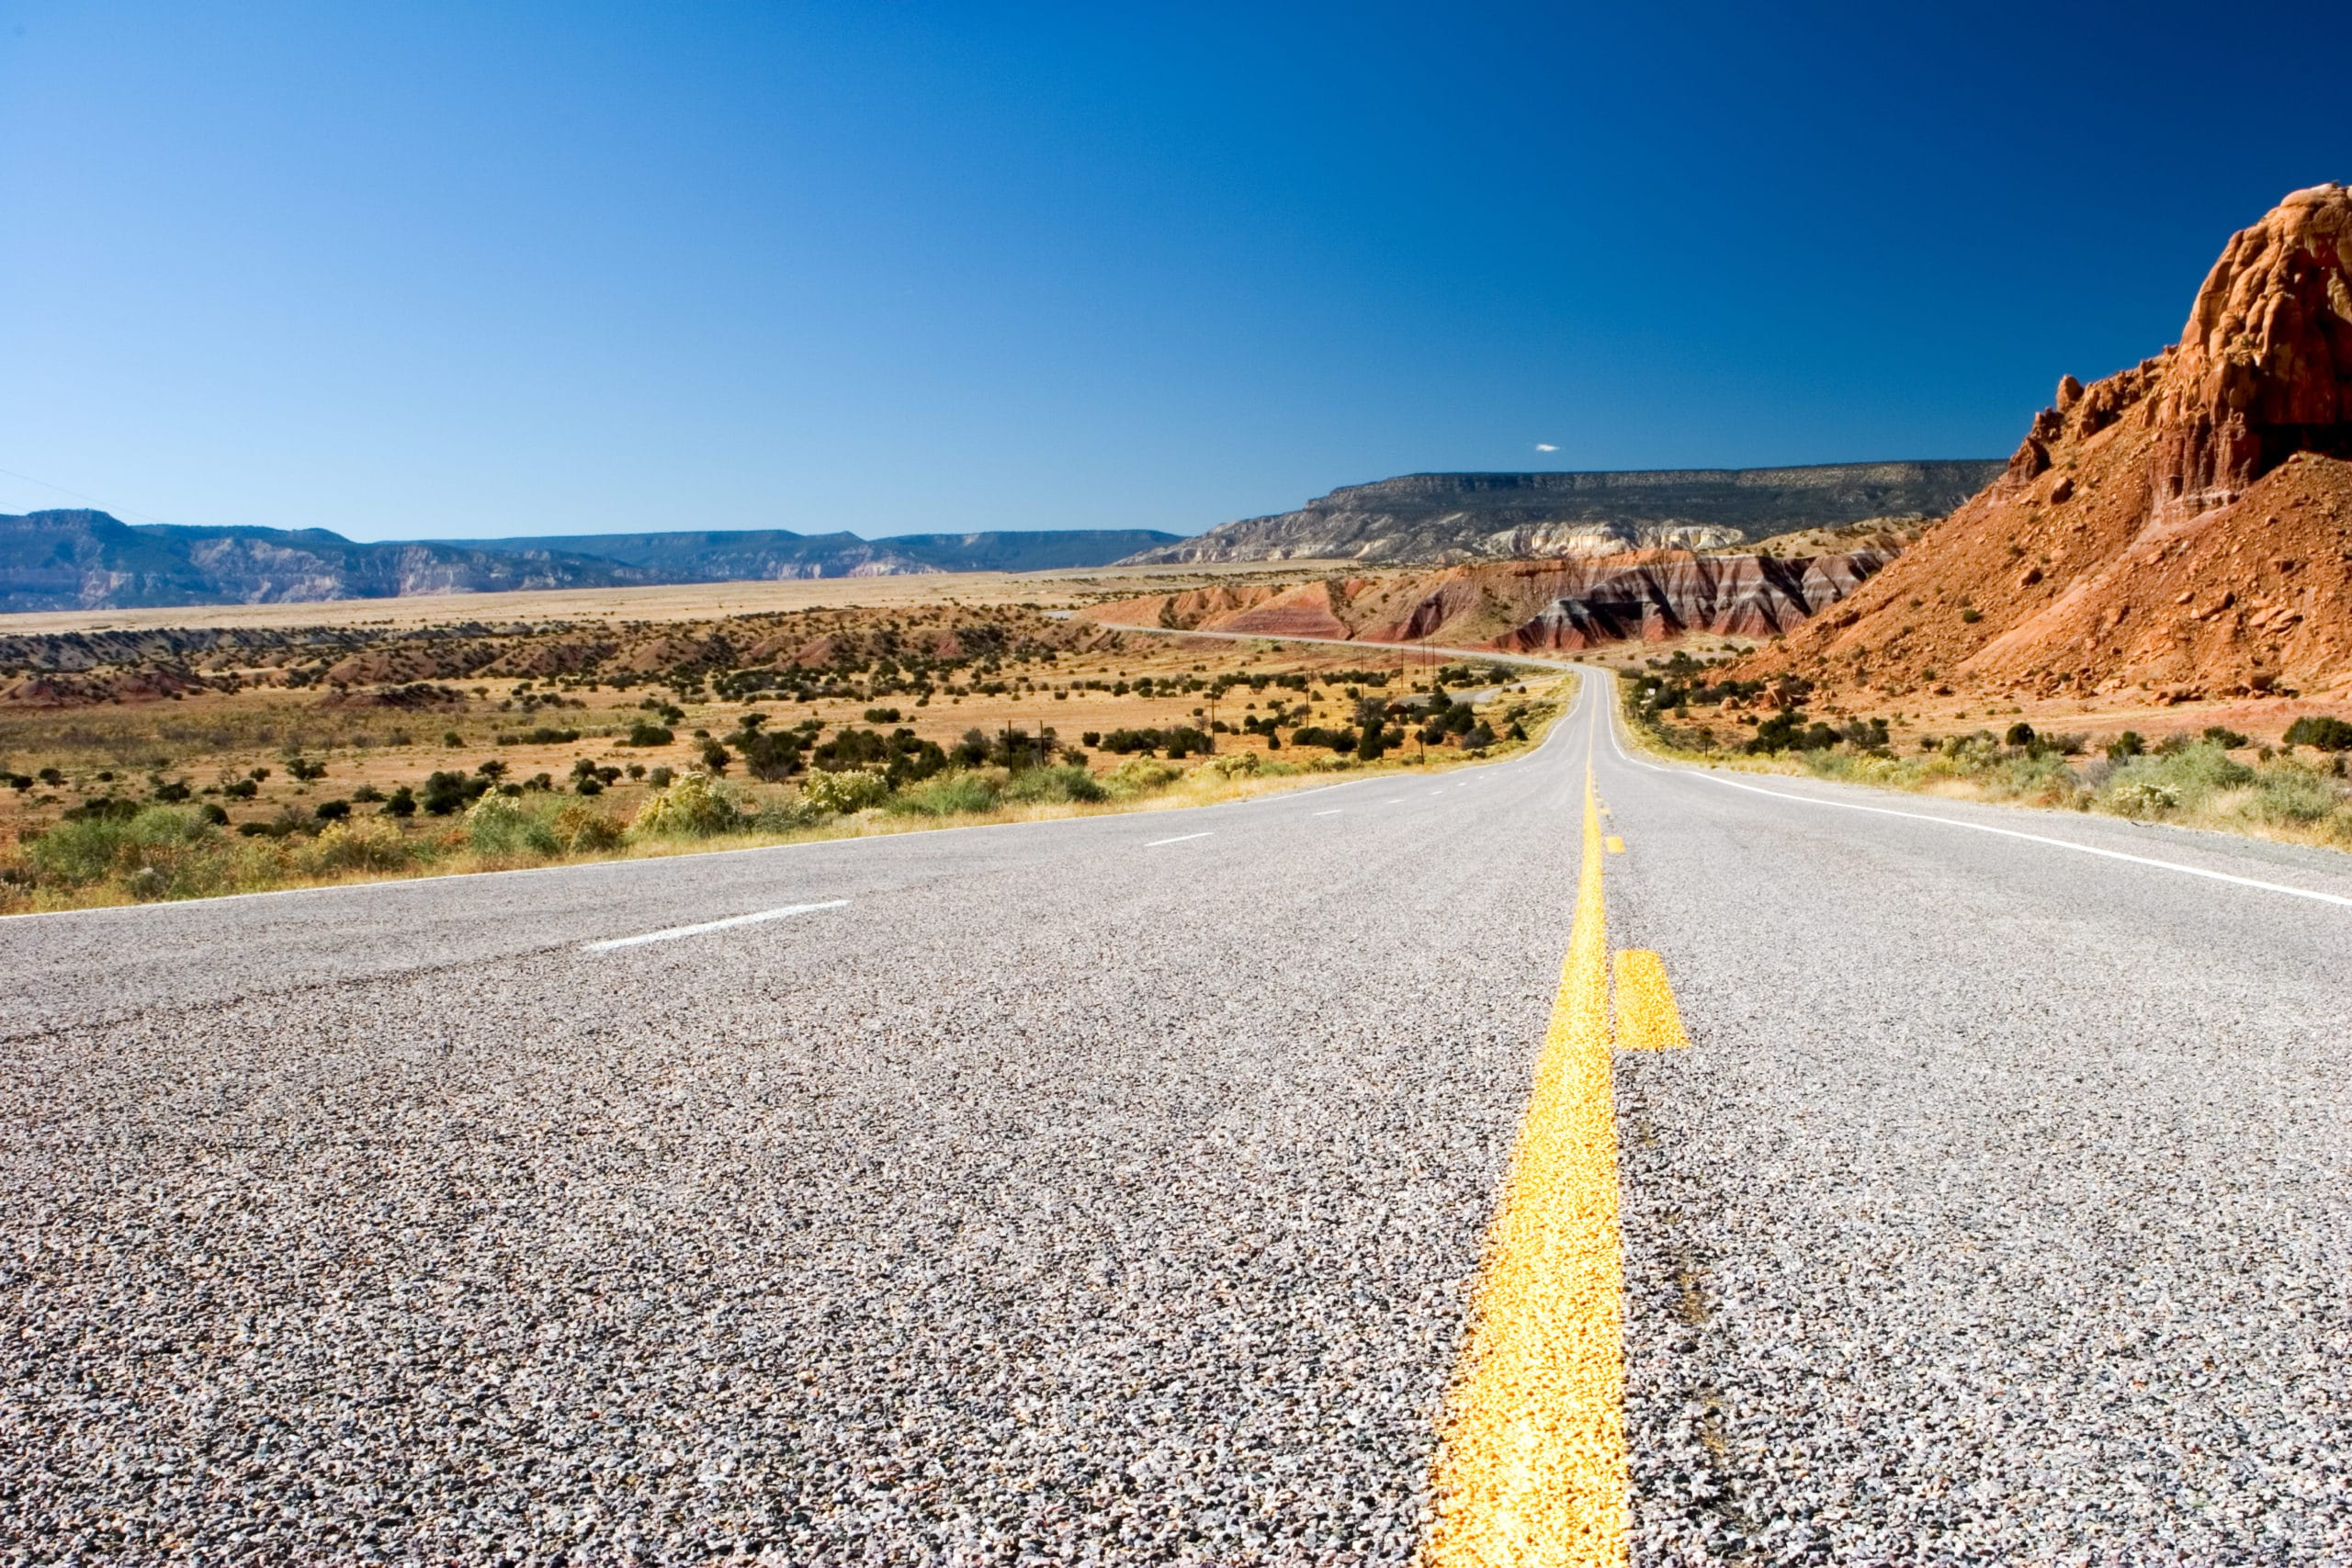 A road view of the Turquoise Trail in New Mexico